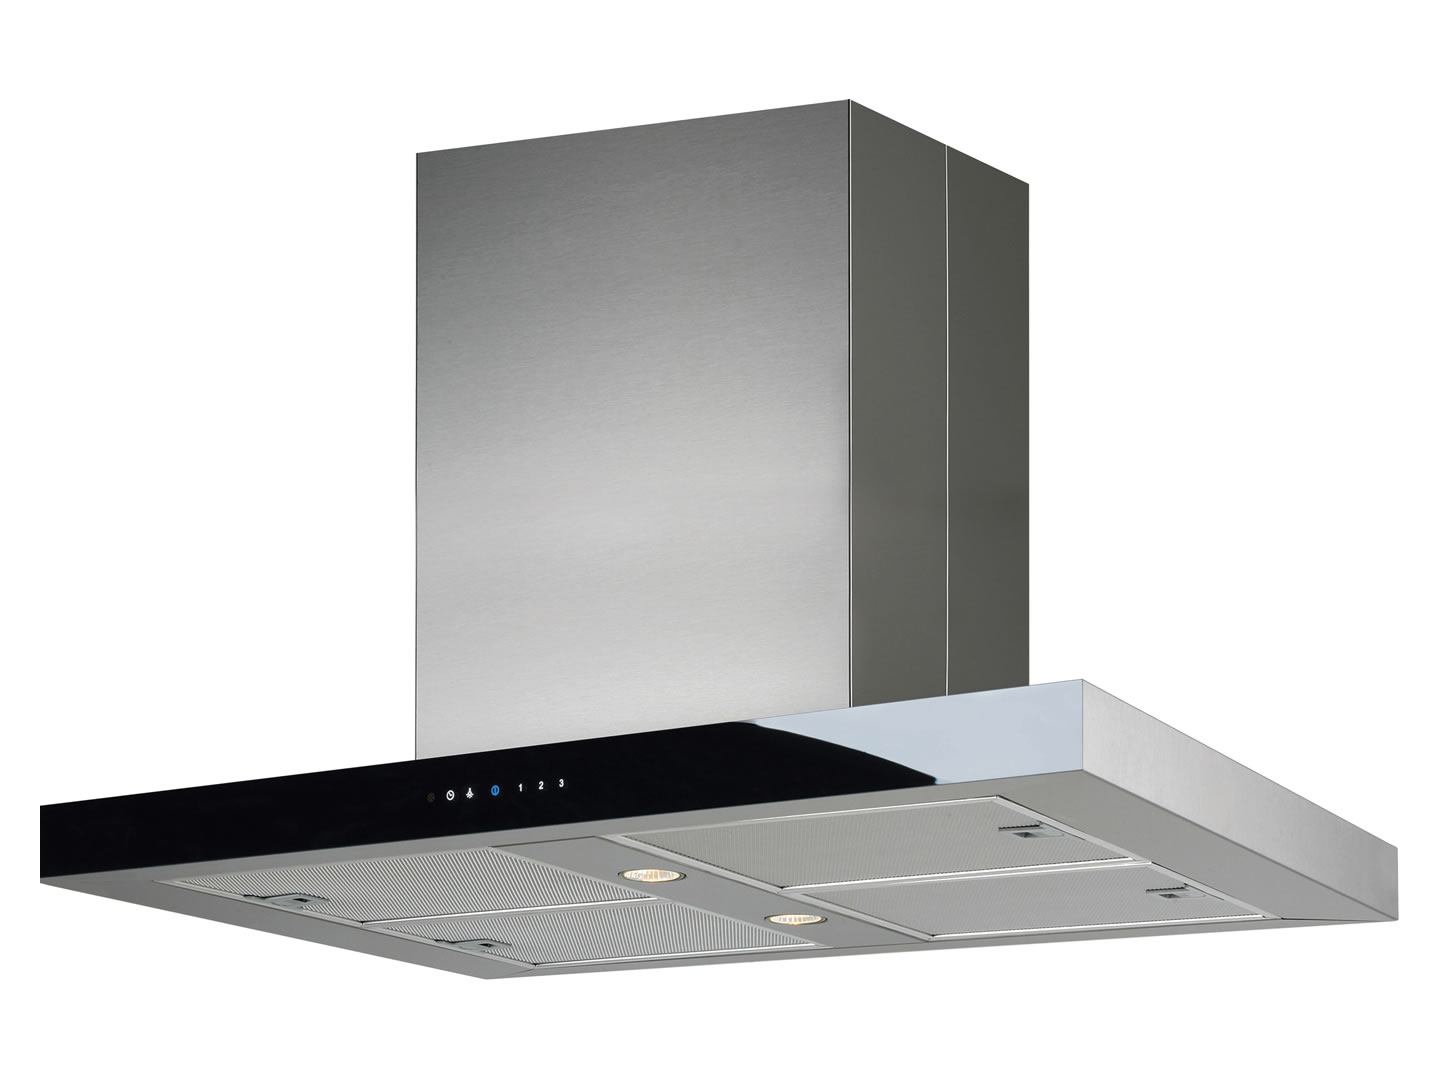 DeLonghi Delonghi DEISELENE90 Kitchen Hood